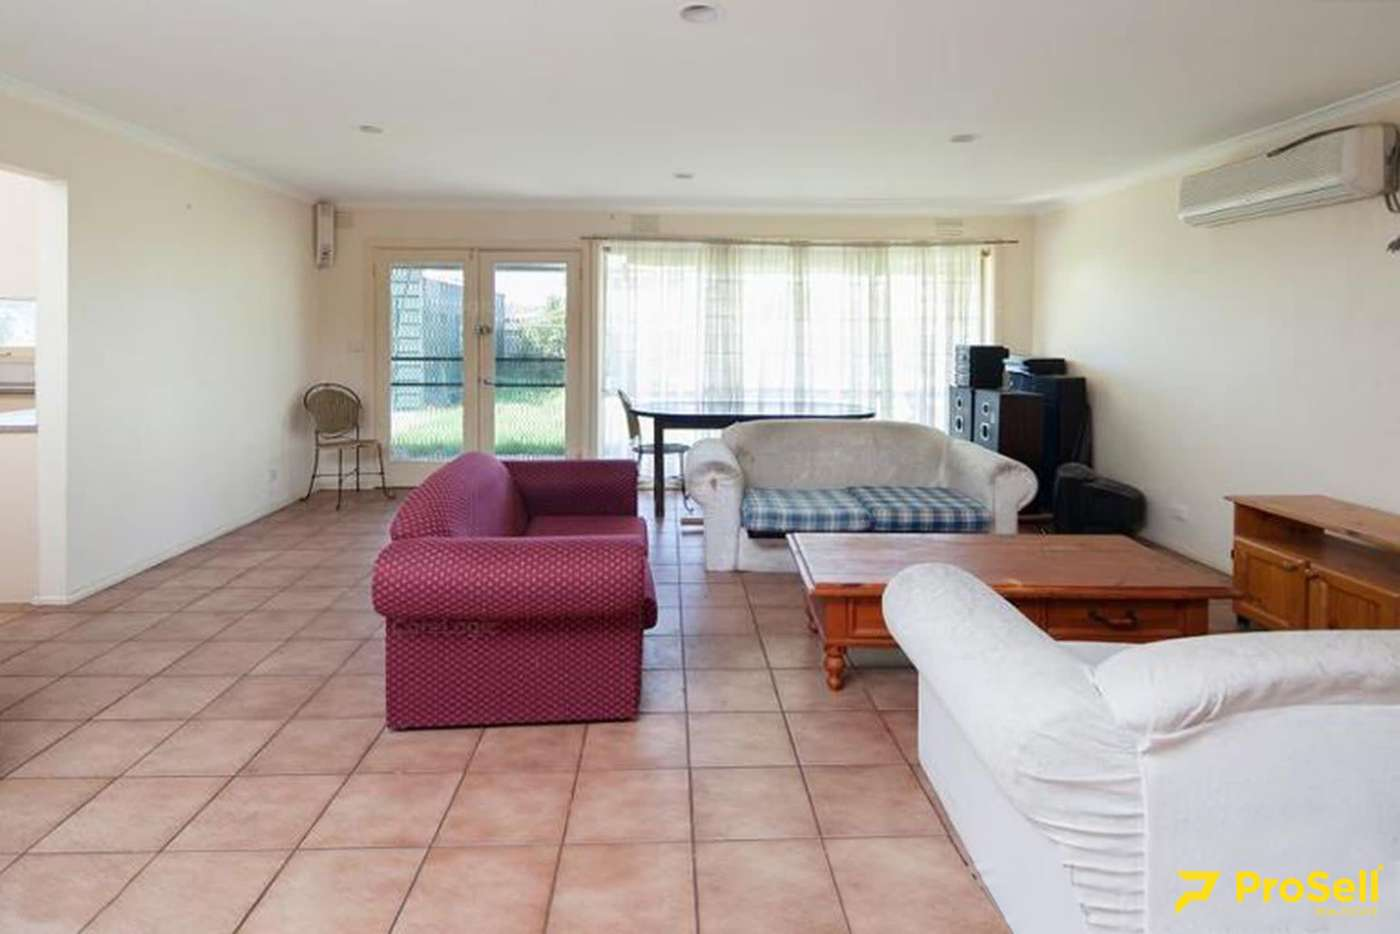 Fifth view of Homely house listing, 16 Knell Street, Mulgrave VIC 3170